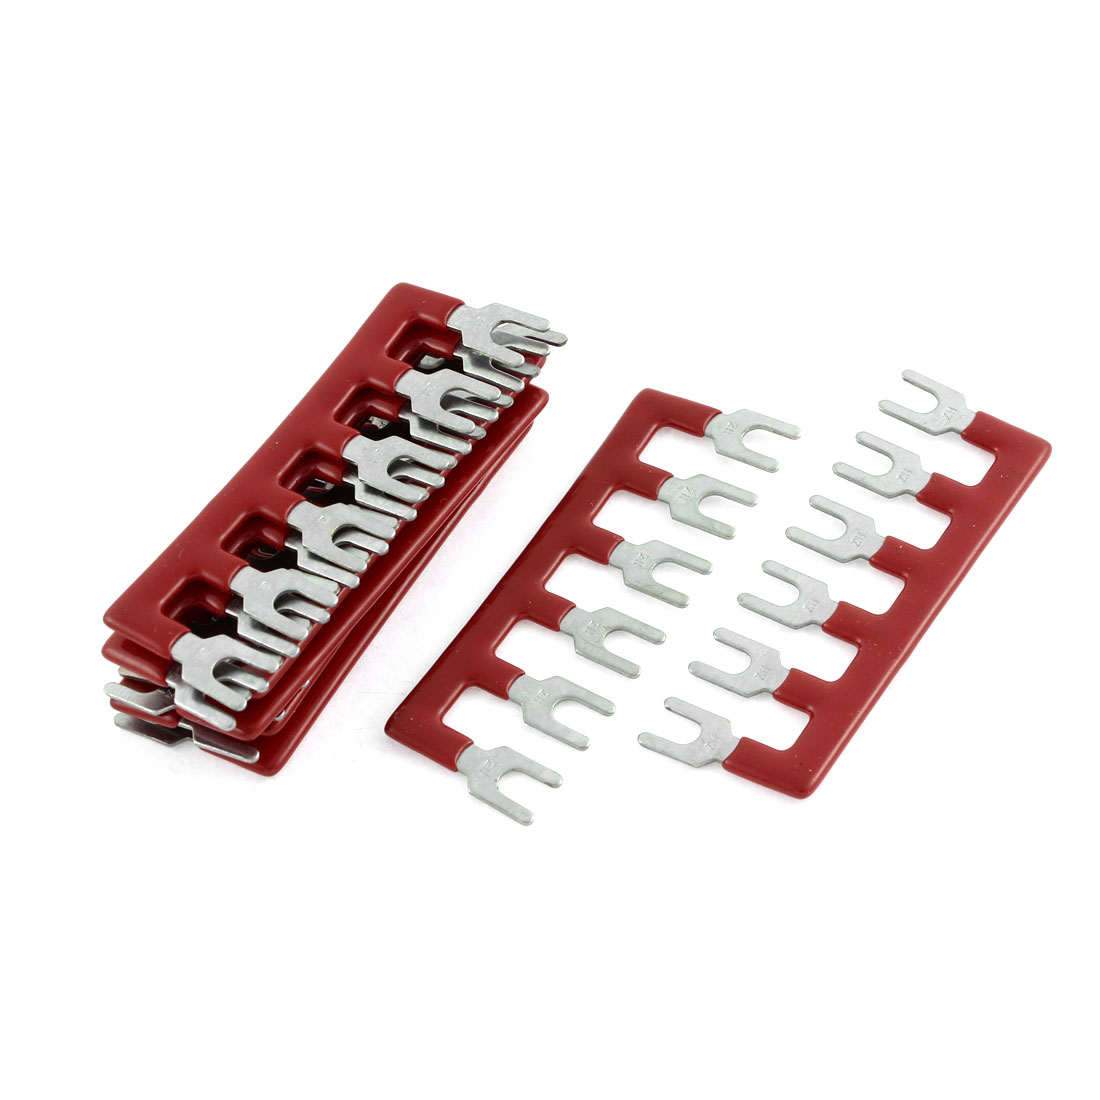 10 Pcs Fork Type 6 Postions Pre Insulated Terminal Strip Block Red 600V 25A